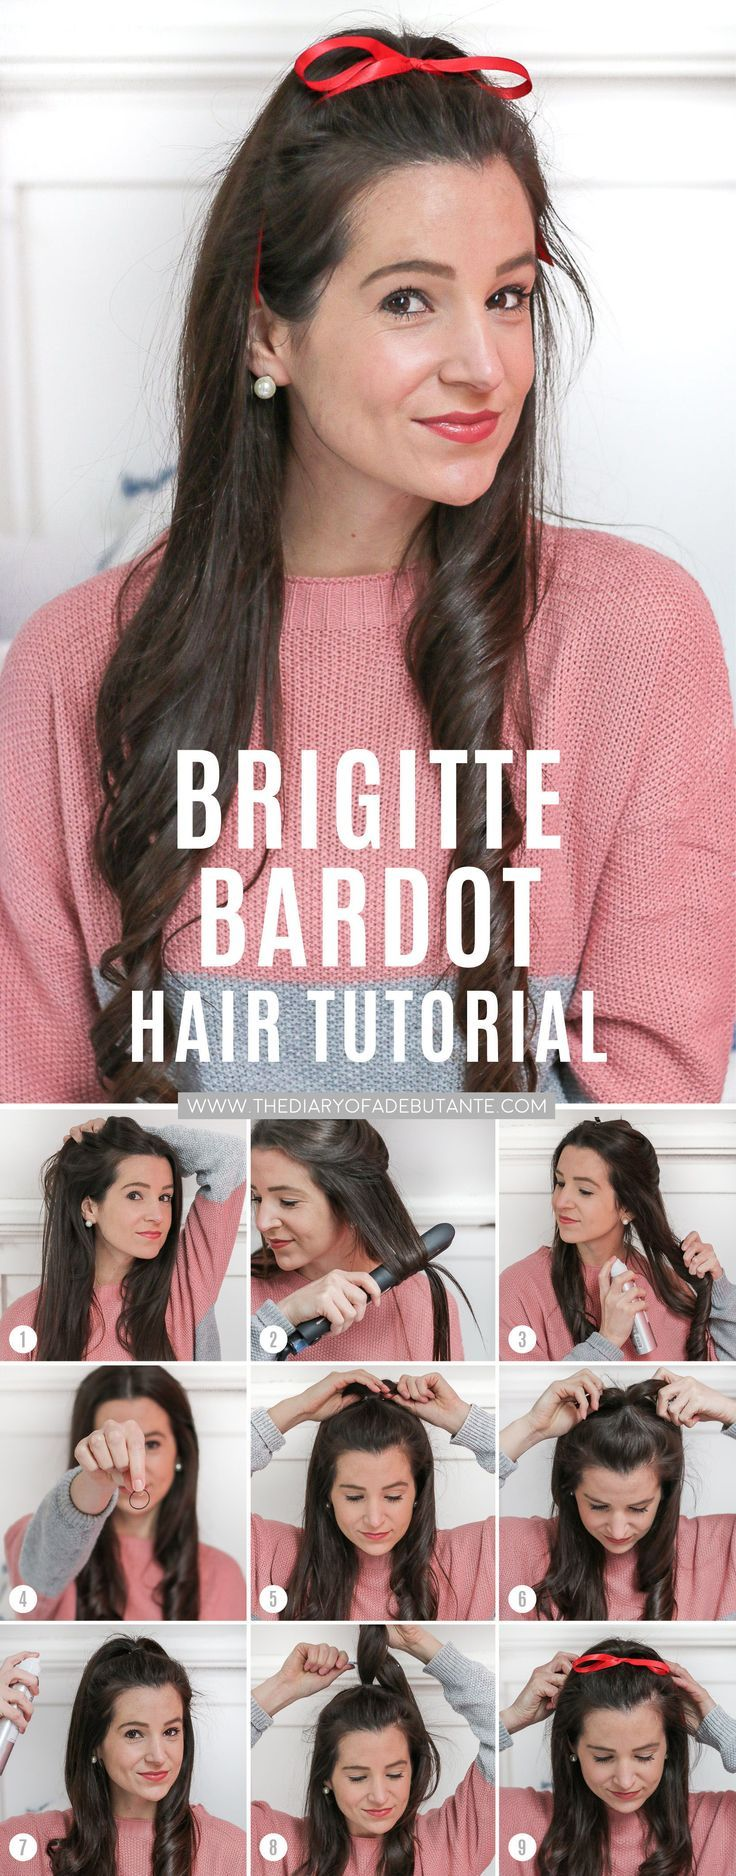 Hair Tutorials : If you're looking for holiday hairstyles for long hair, try this fun Brigitte Ba…